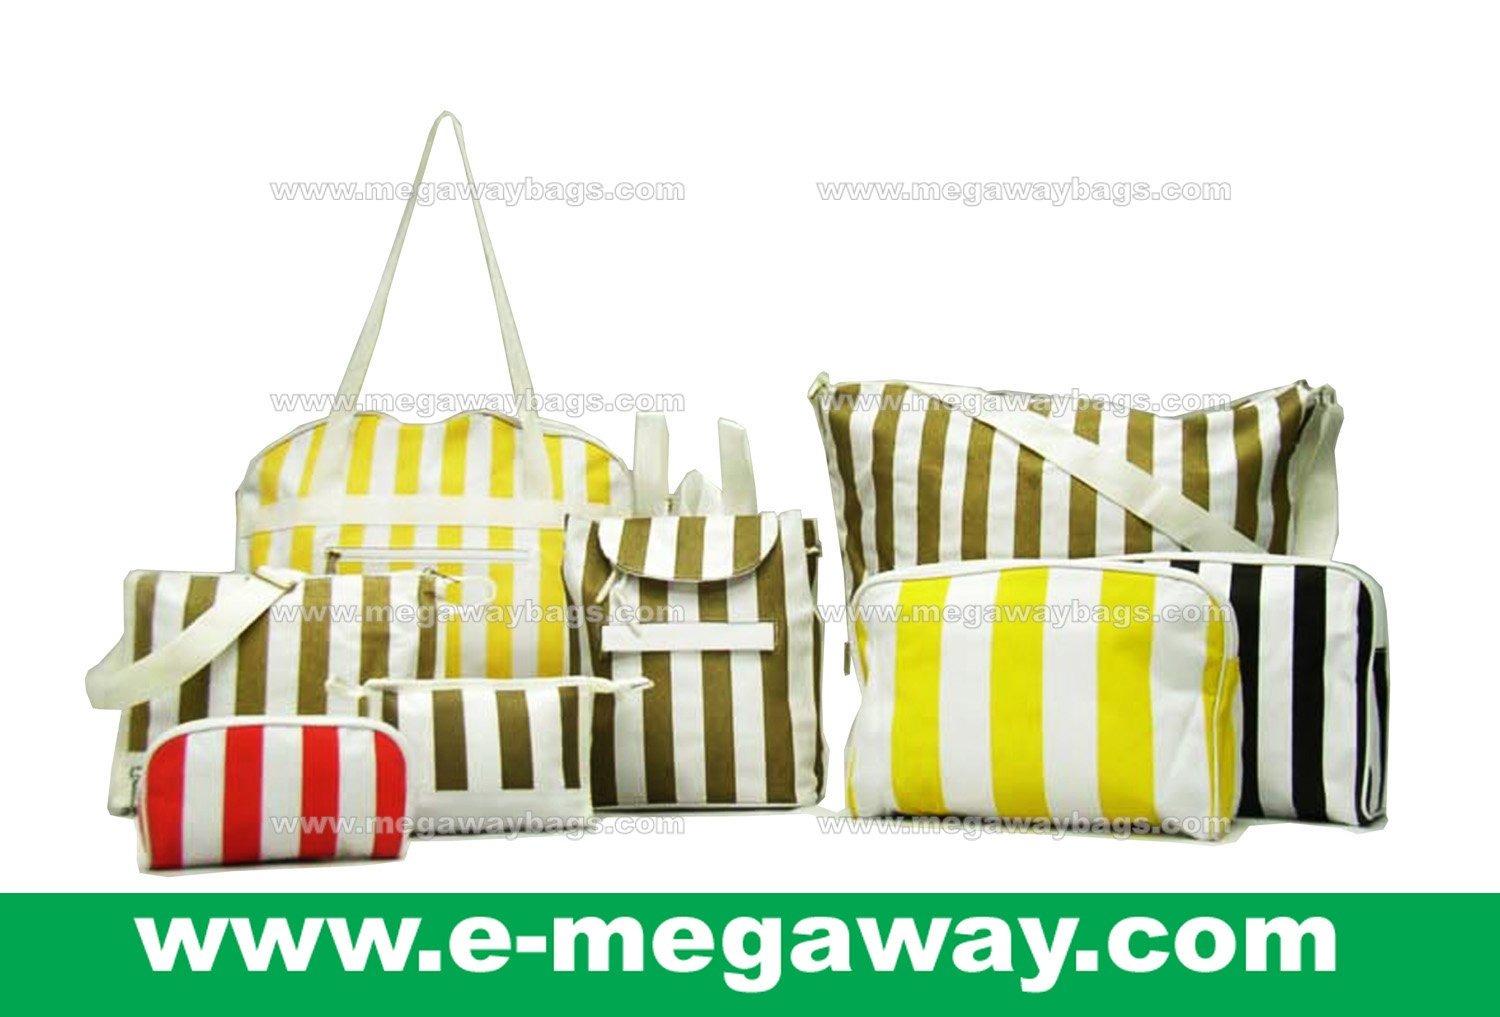 Beauty Amenity Cosmetics Bags Case Sac Pouch Wallets Stripe Printed MegawayBags #CC-0843